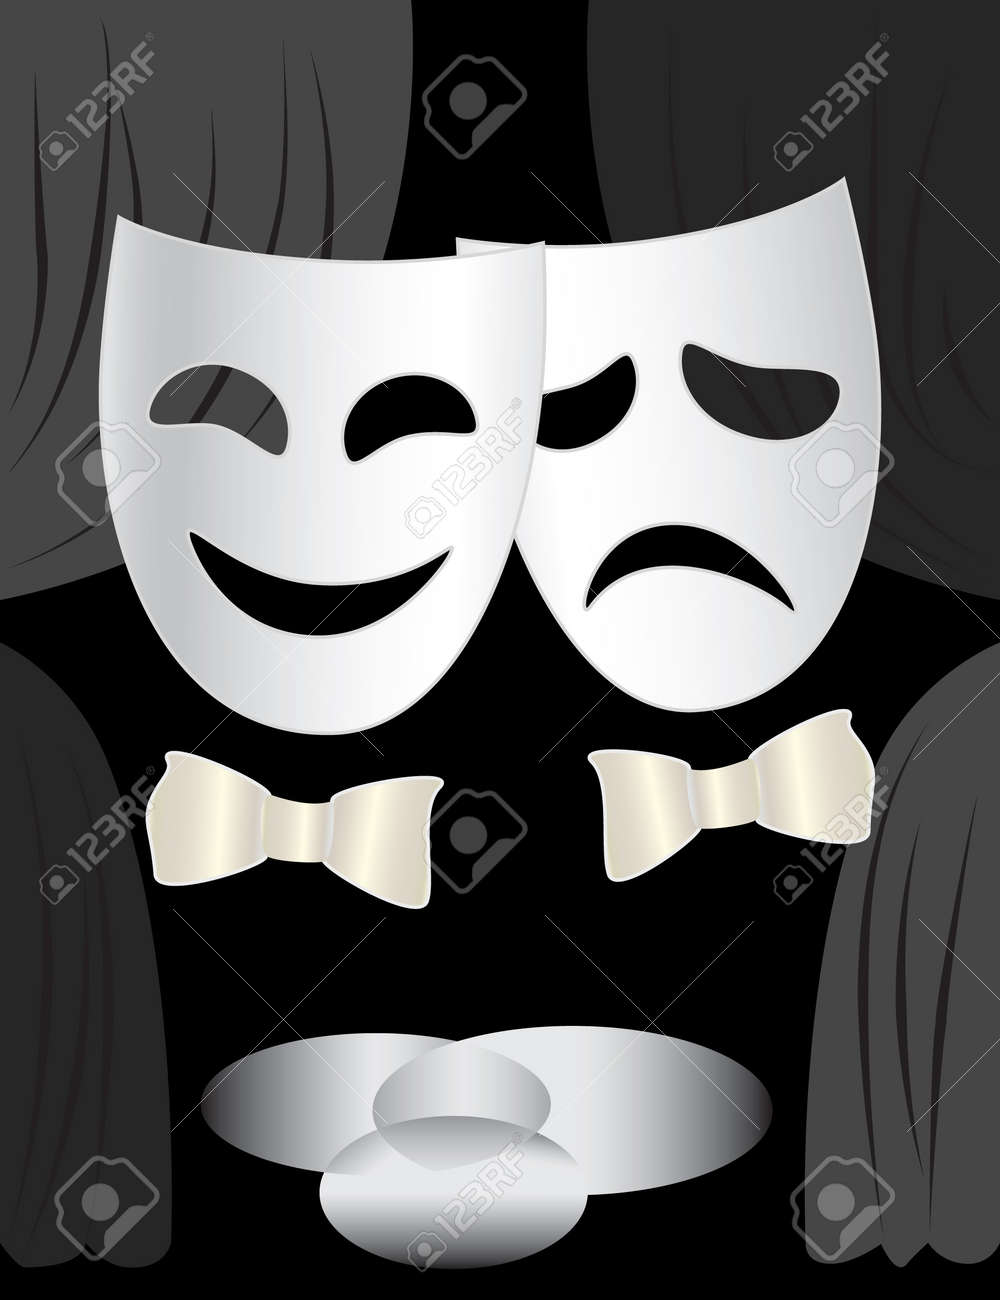 Black and white stage curtain - Black And White Background With Theatre Stage Curtains And Masks Stock Vector 8312304